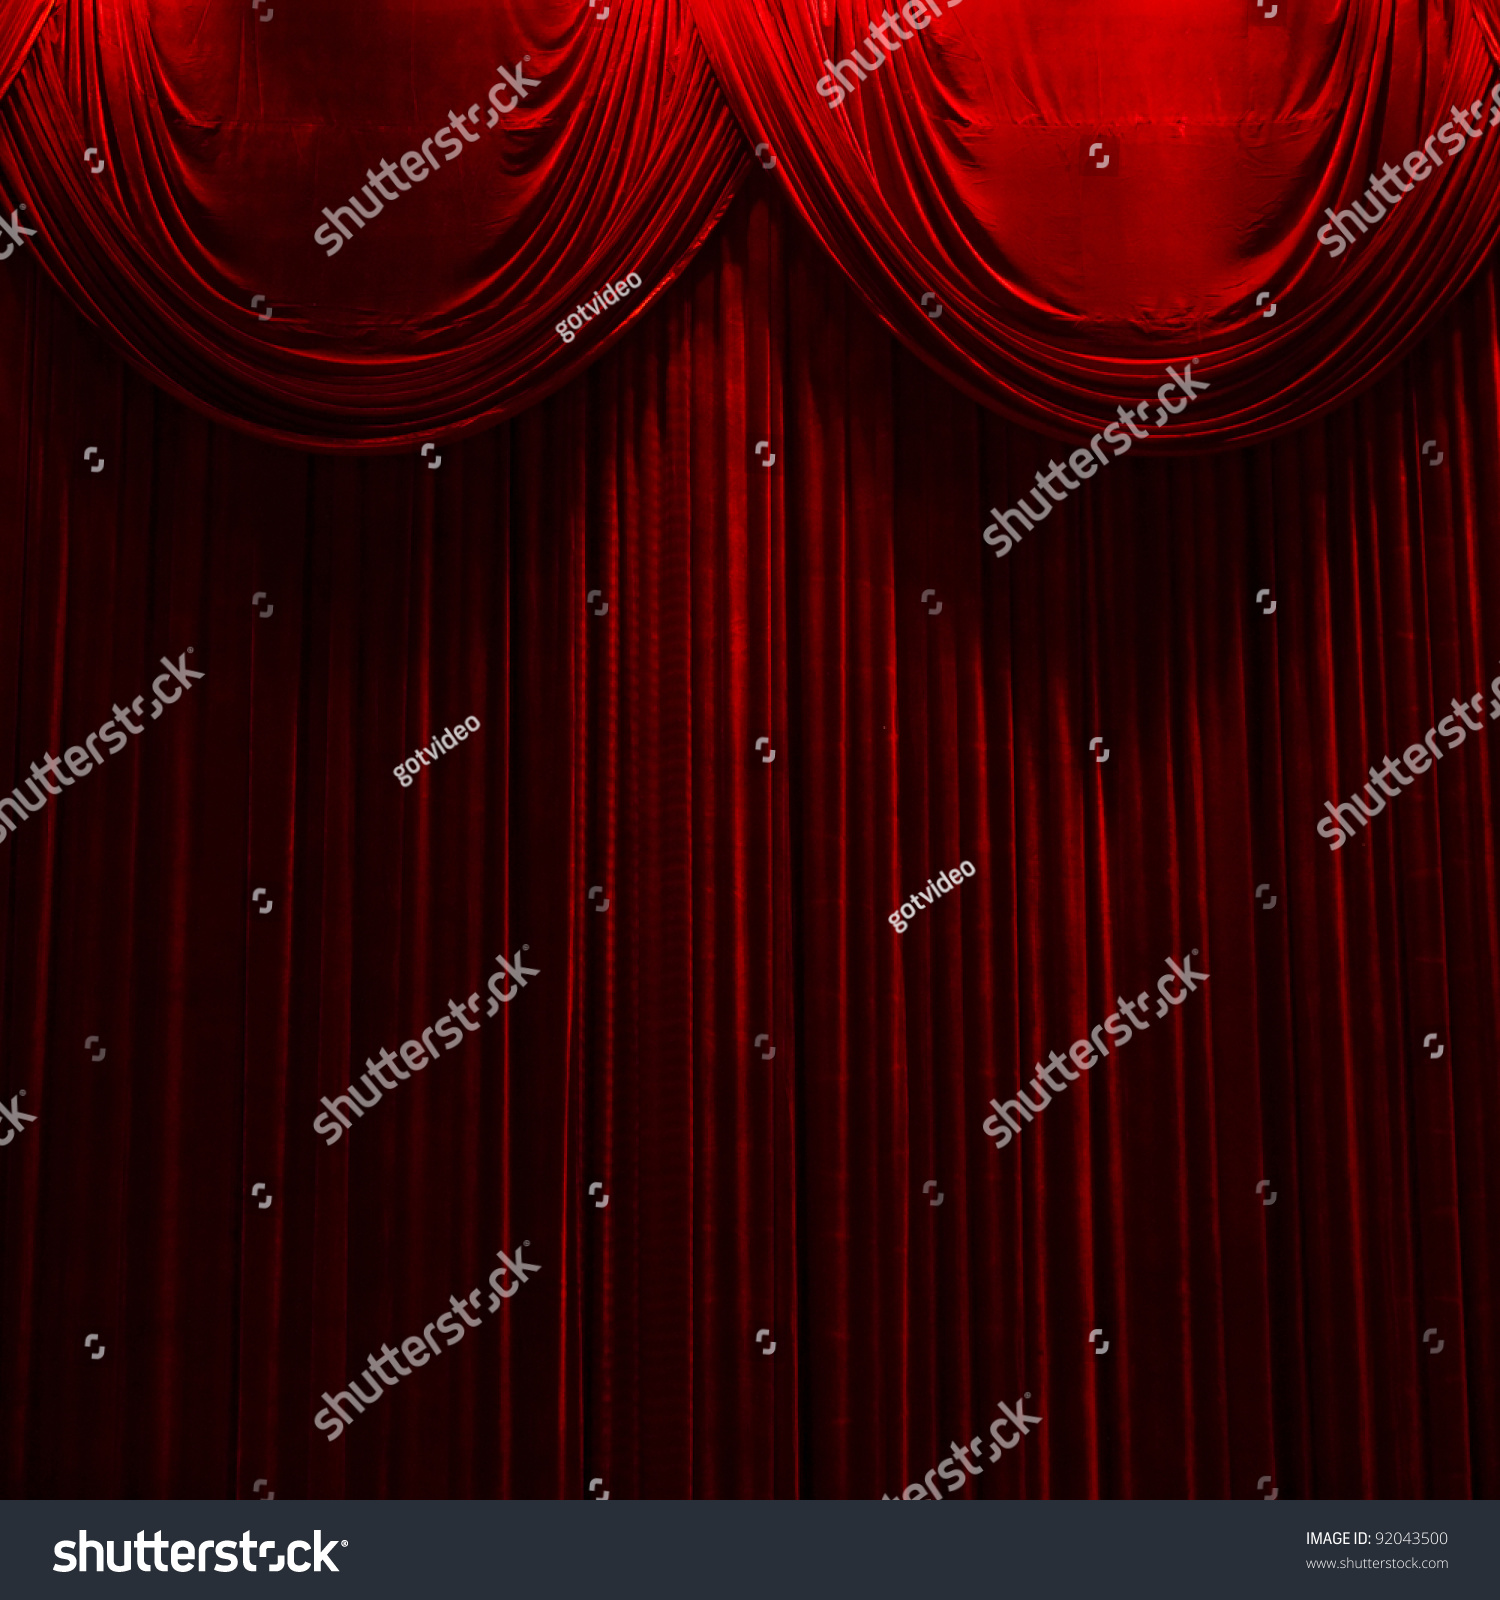 Cheap black stage curtains - Real Red Velvet Curtain Red Velvet Stage Theater Curtains